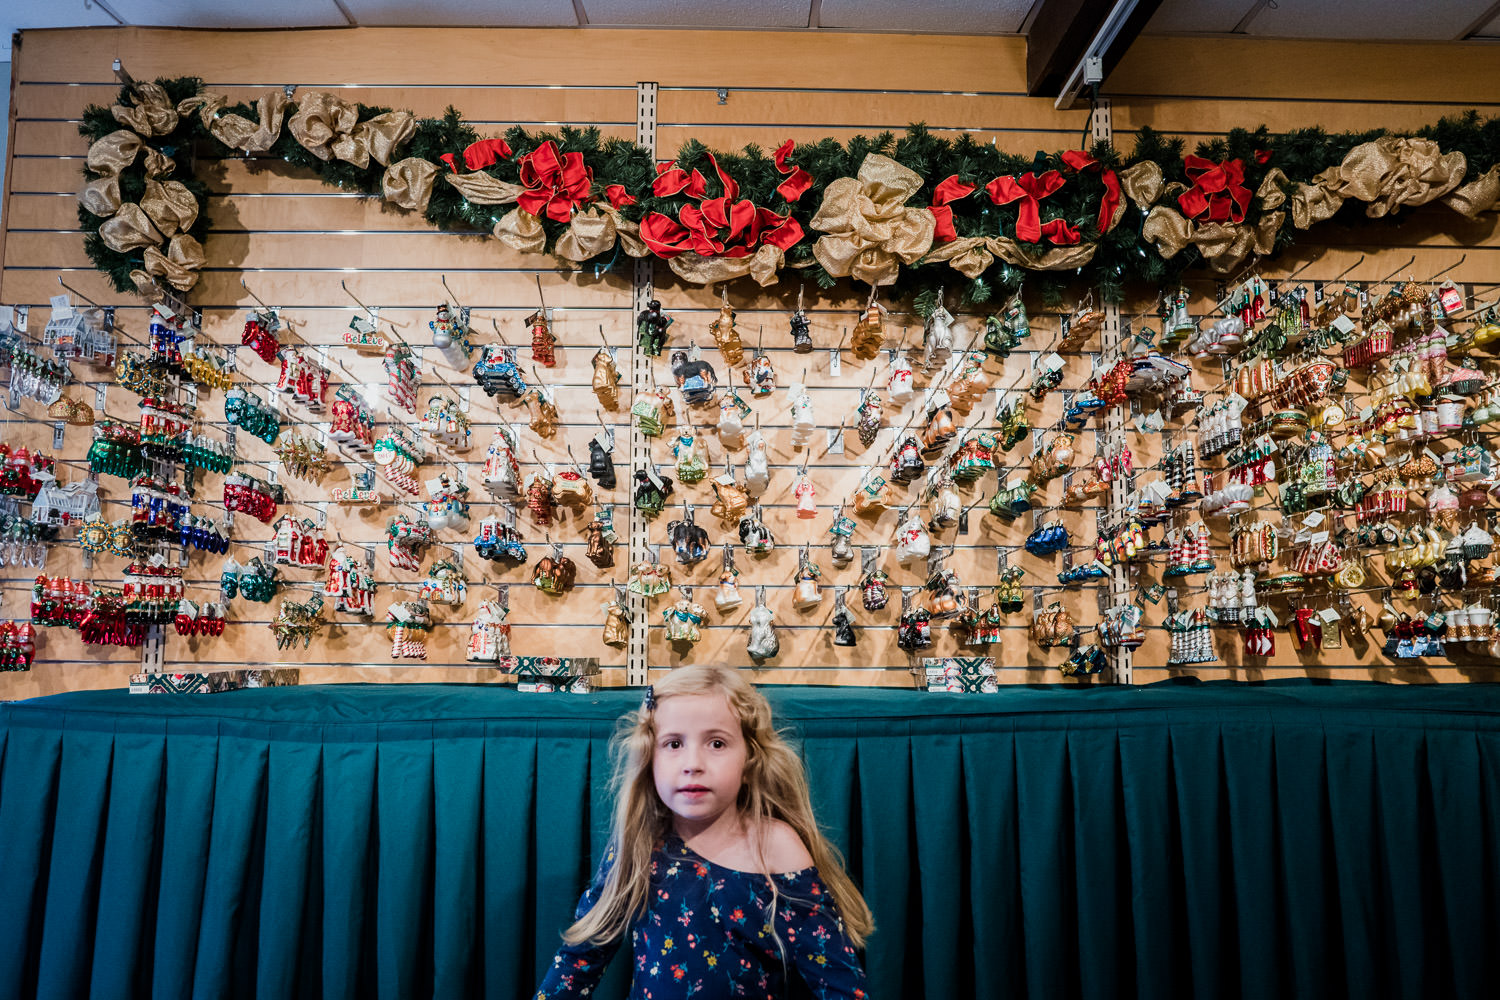 A little girl stands in front of a display of Christmas ornaments.